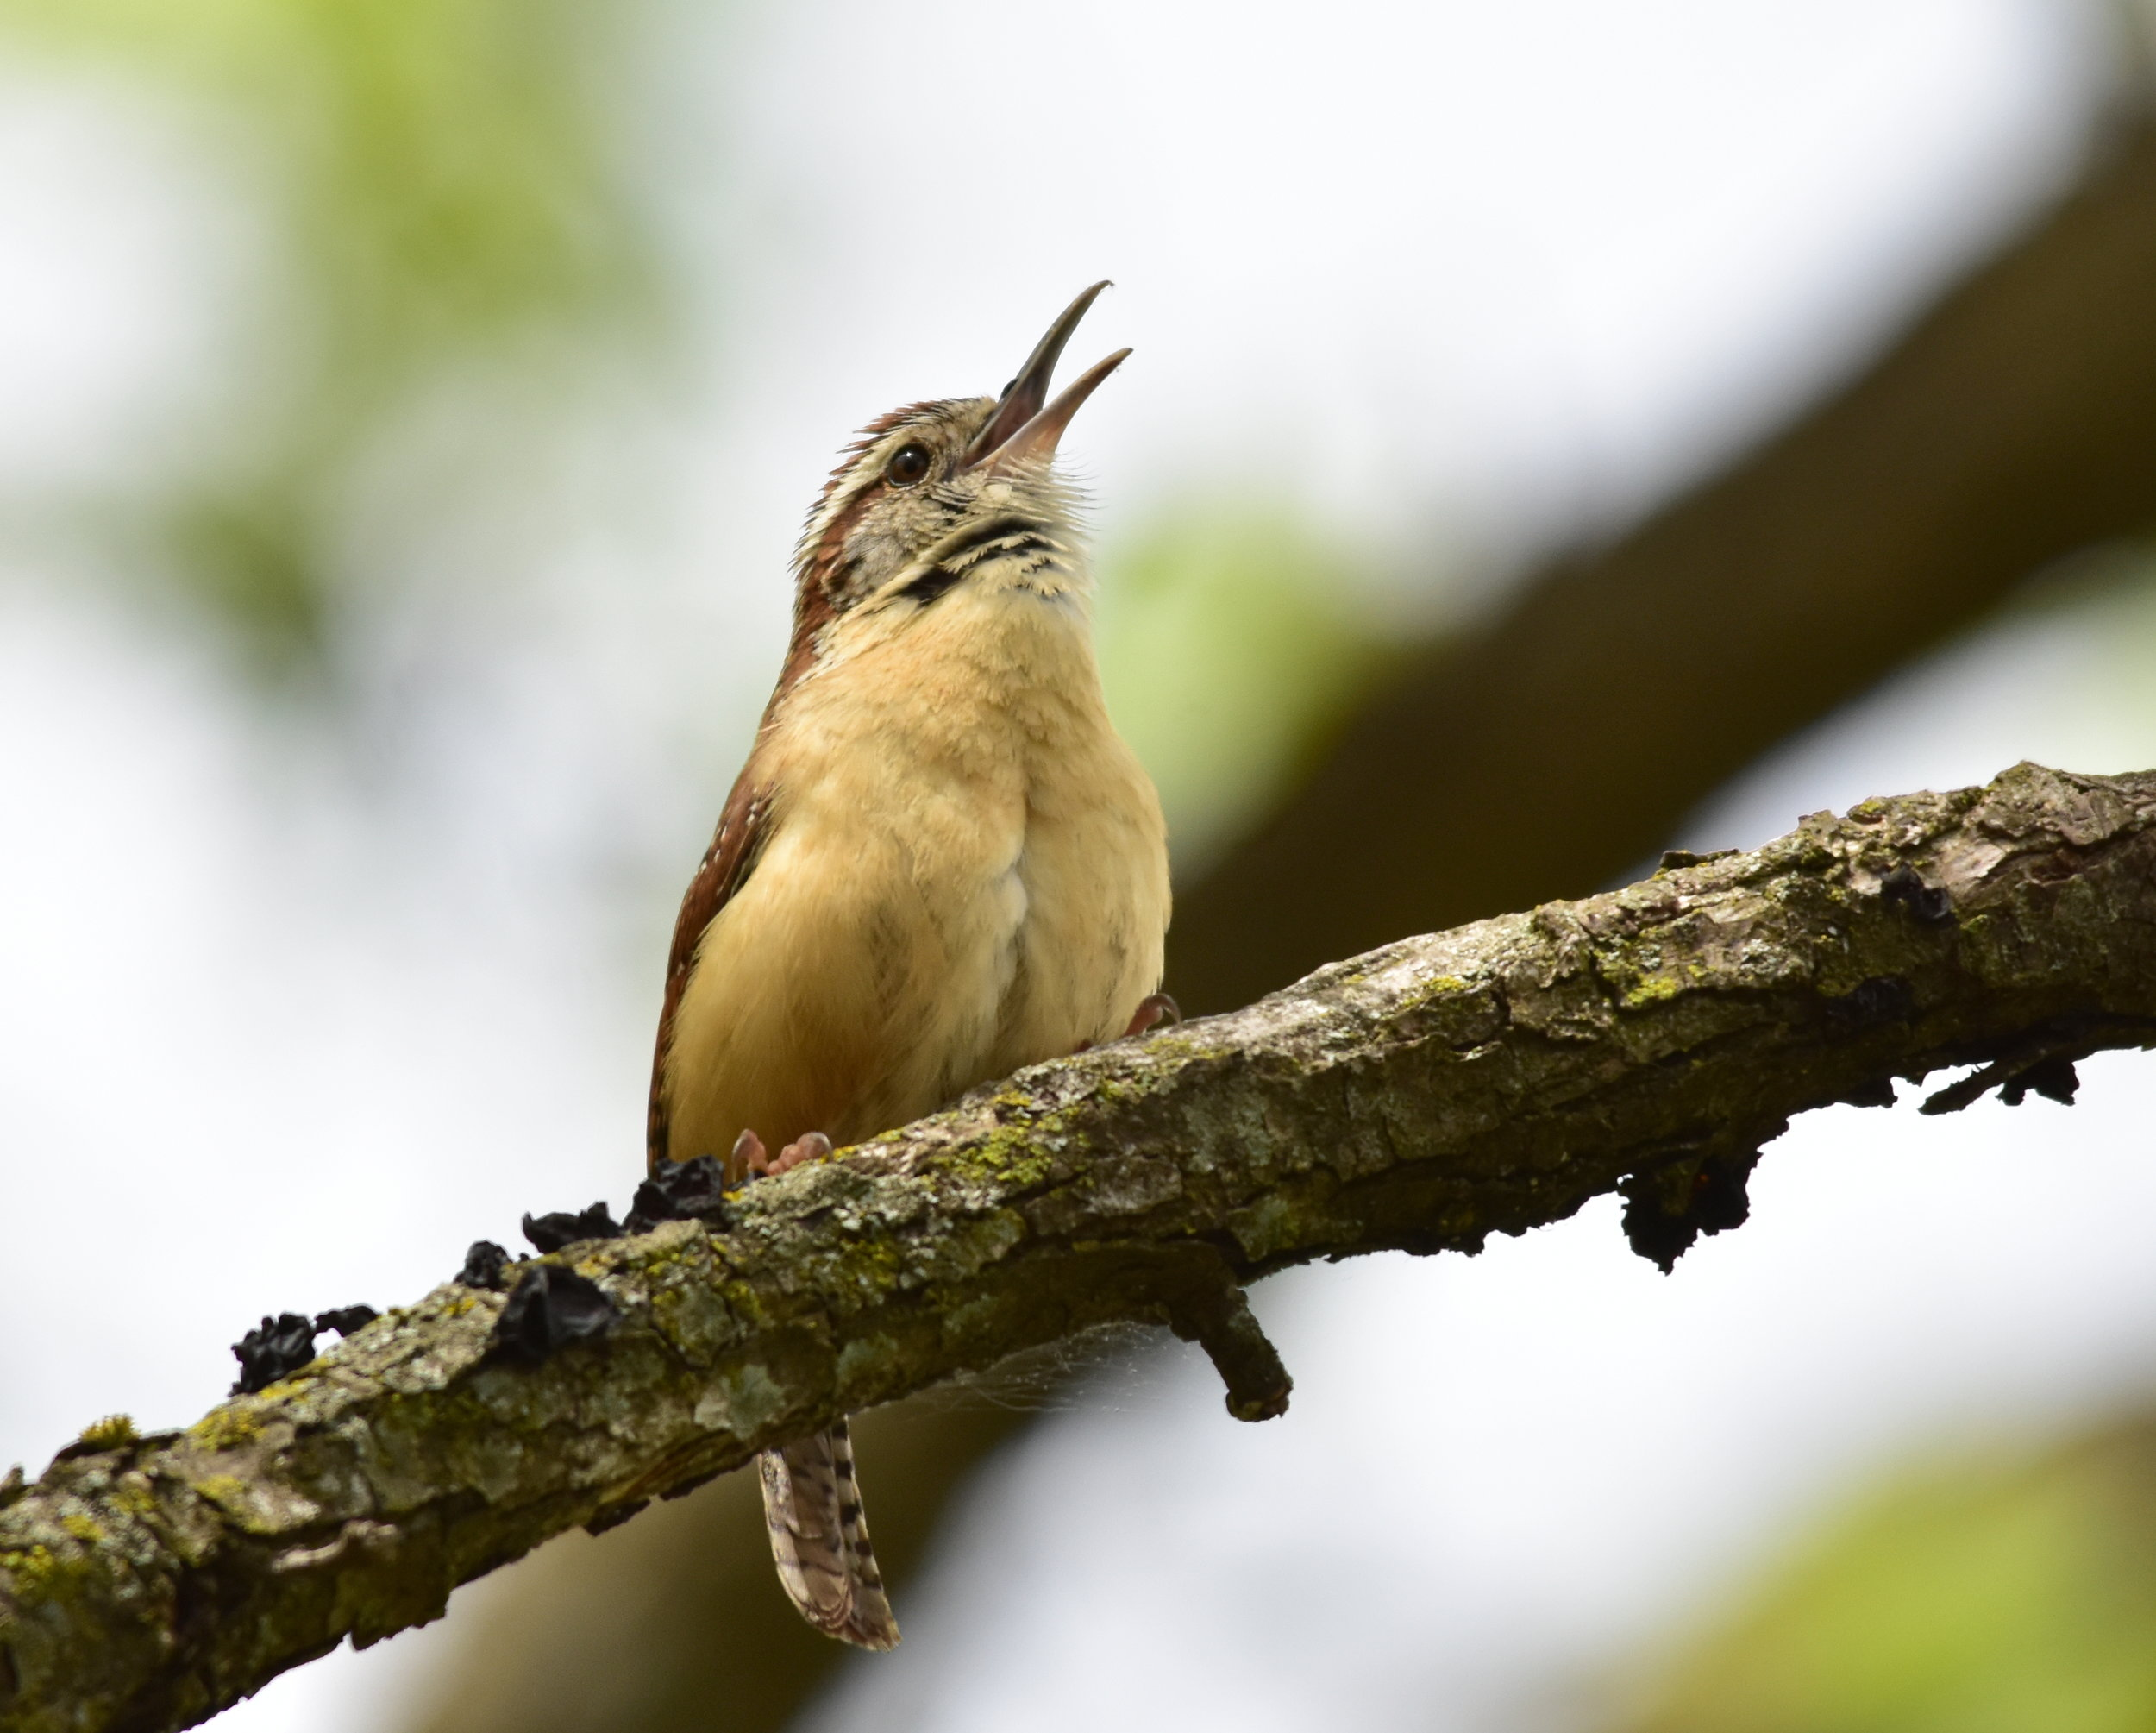 A Carolina wren makes its call in a shrubby, wooded residential area. ( USFWS photo by Tom Koemer)